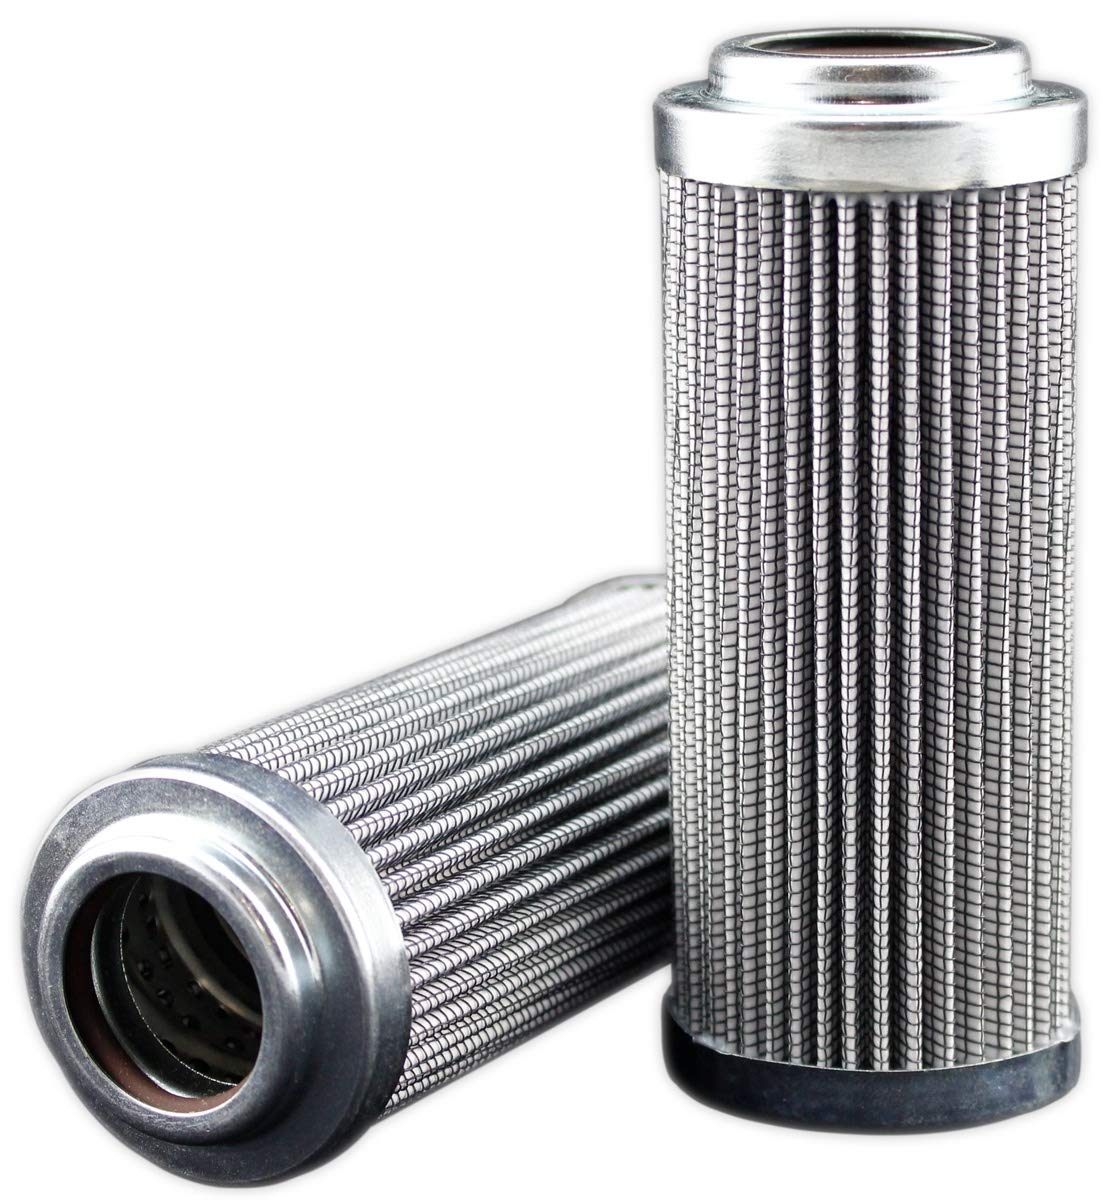 FLUITEK P01804410S61 Heavy Duty Replacement Hydraulic Filter Element from Big Filter 2-Pack